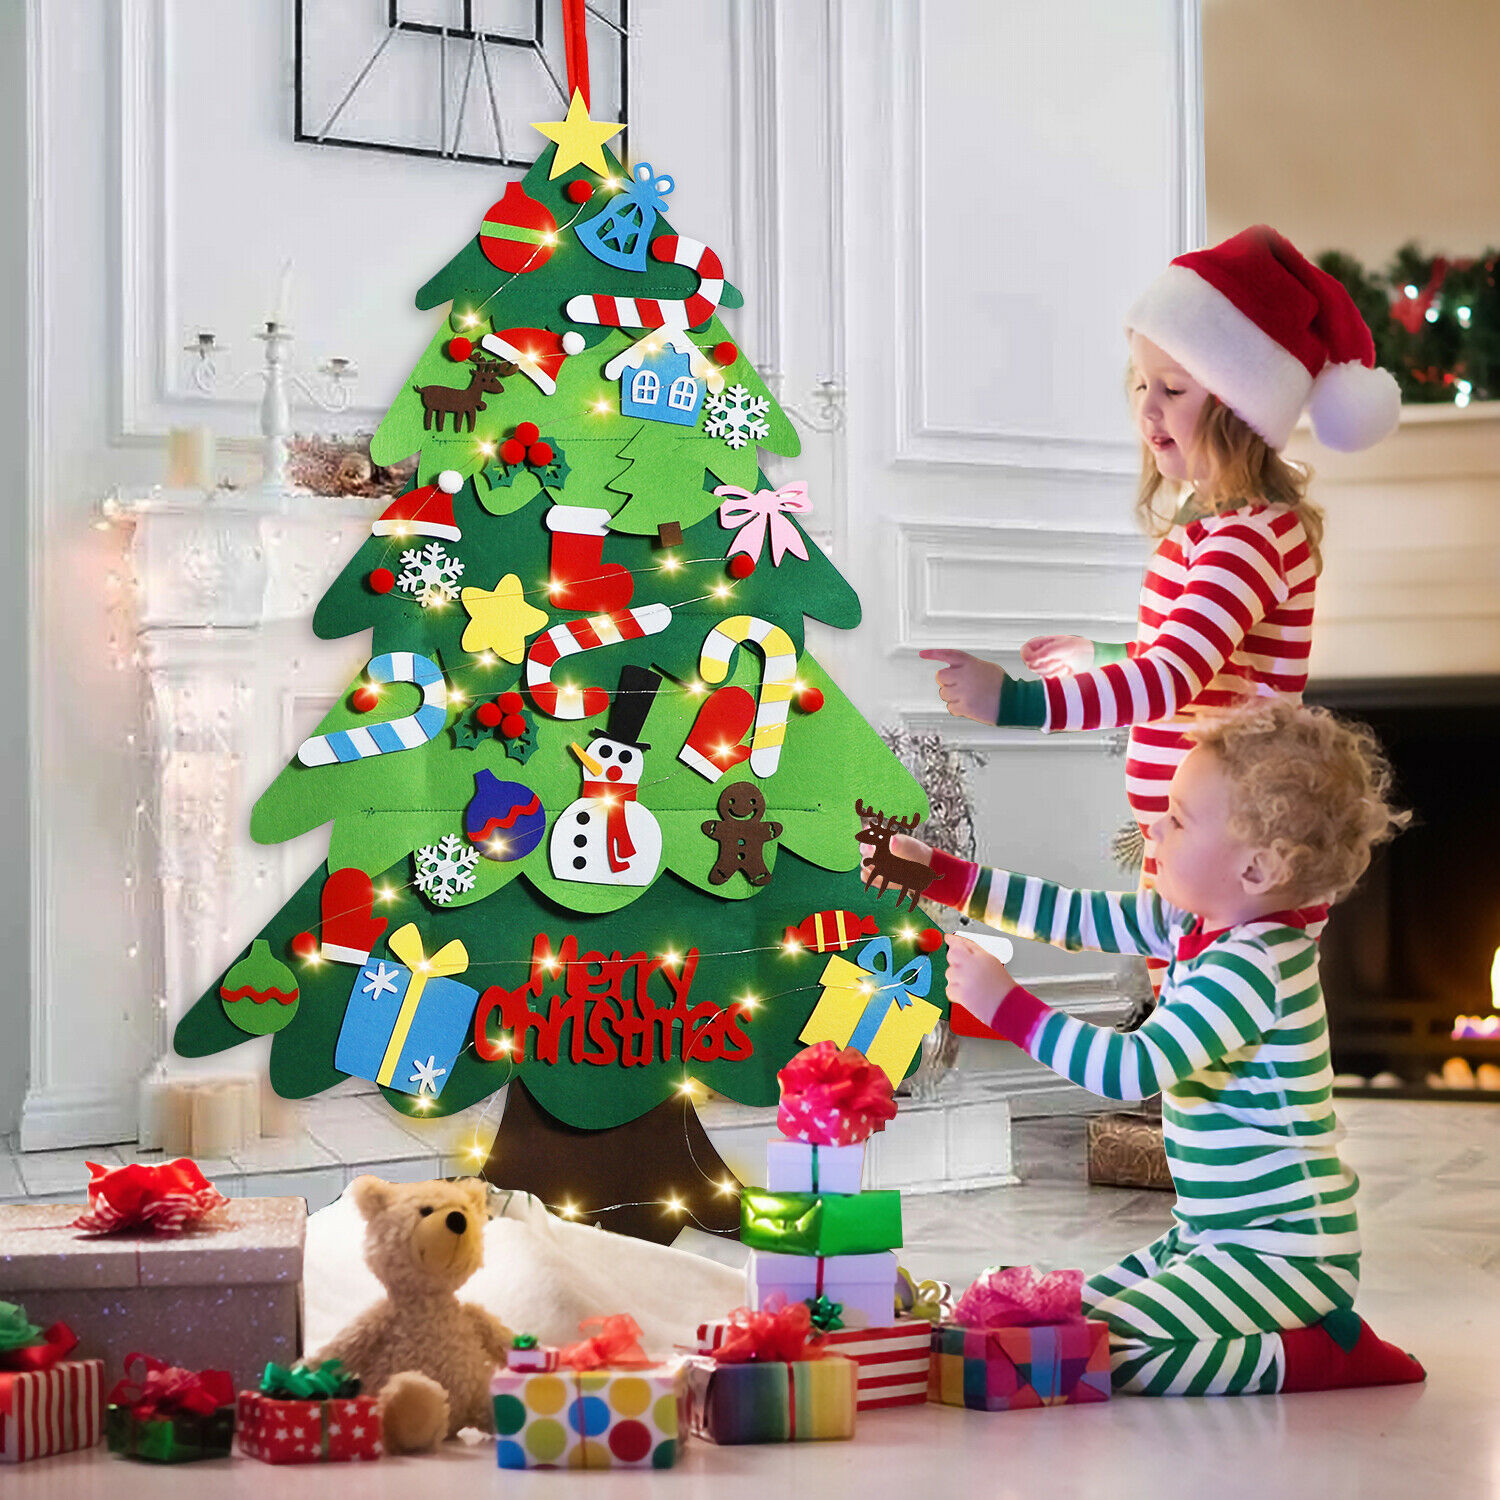 3ft Kids Diy Felt Christmas Tree With Ornaments Xmas Gift Wall Hanging Decor Ebay